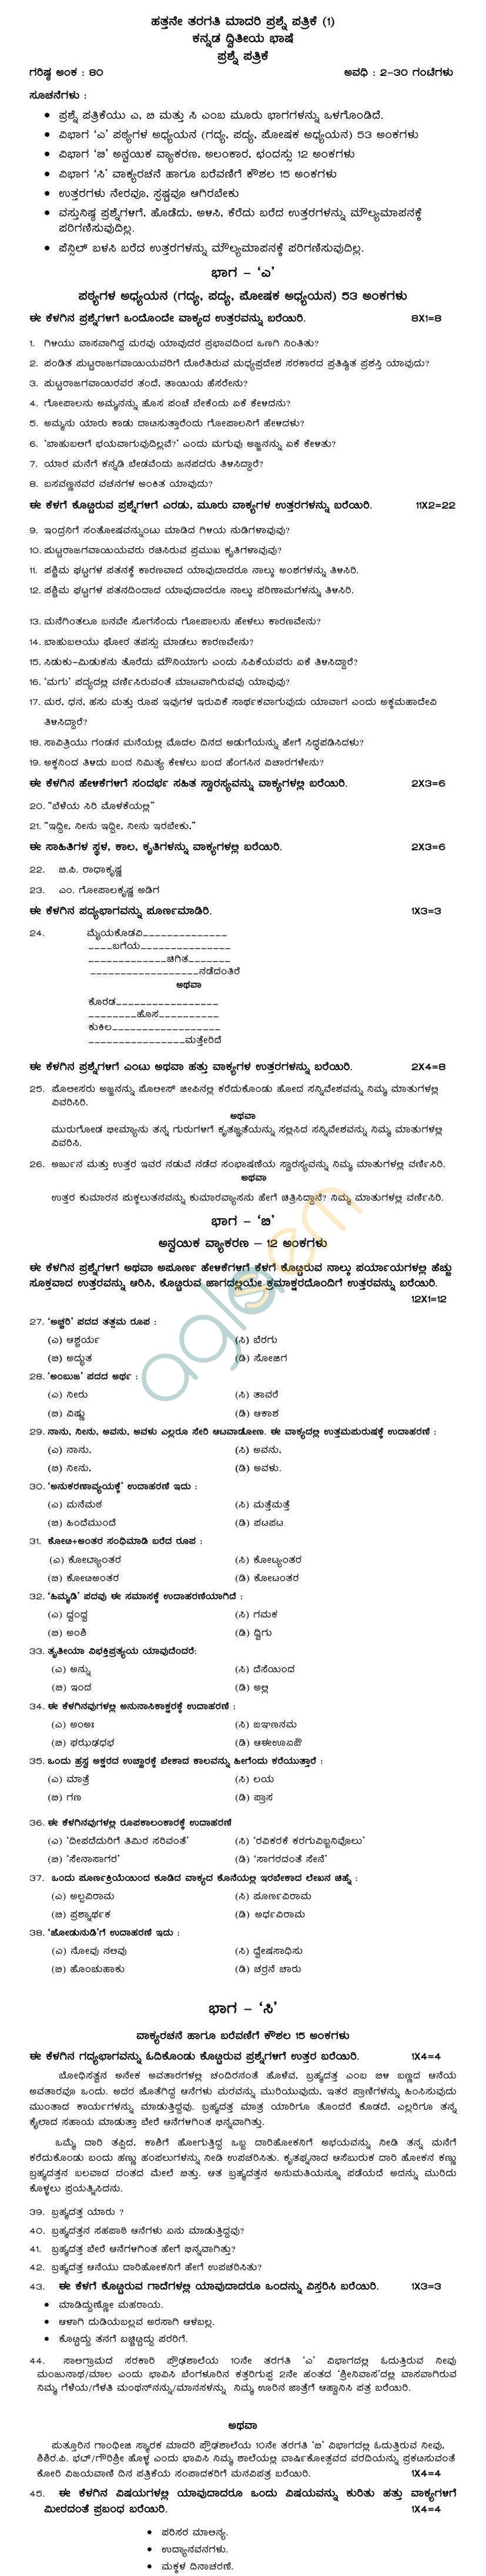 essay on newspaper in kannada The student had submitted an essay written by someone else as his own he had  not  when a local tragedy becomes national news.